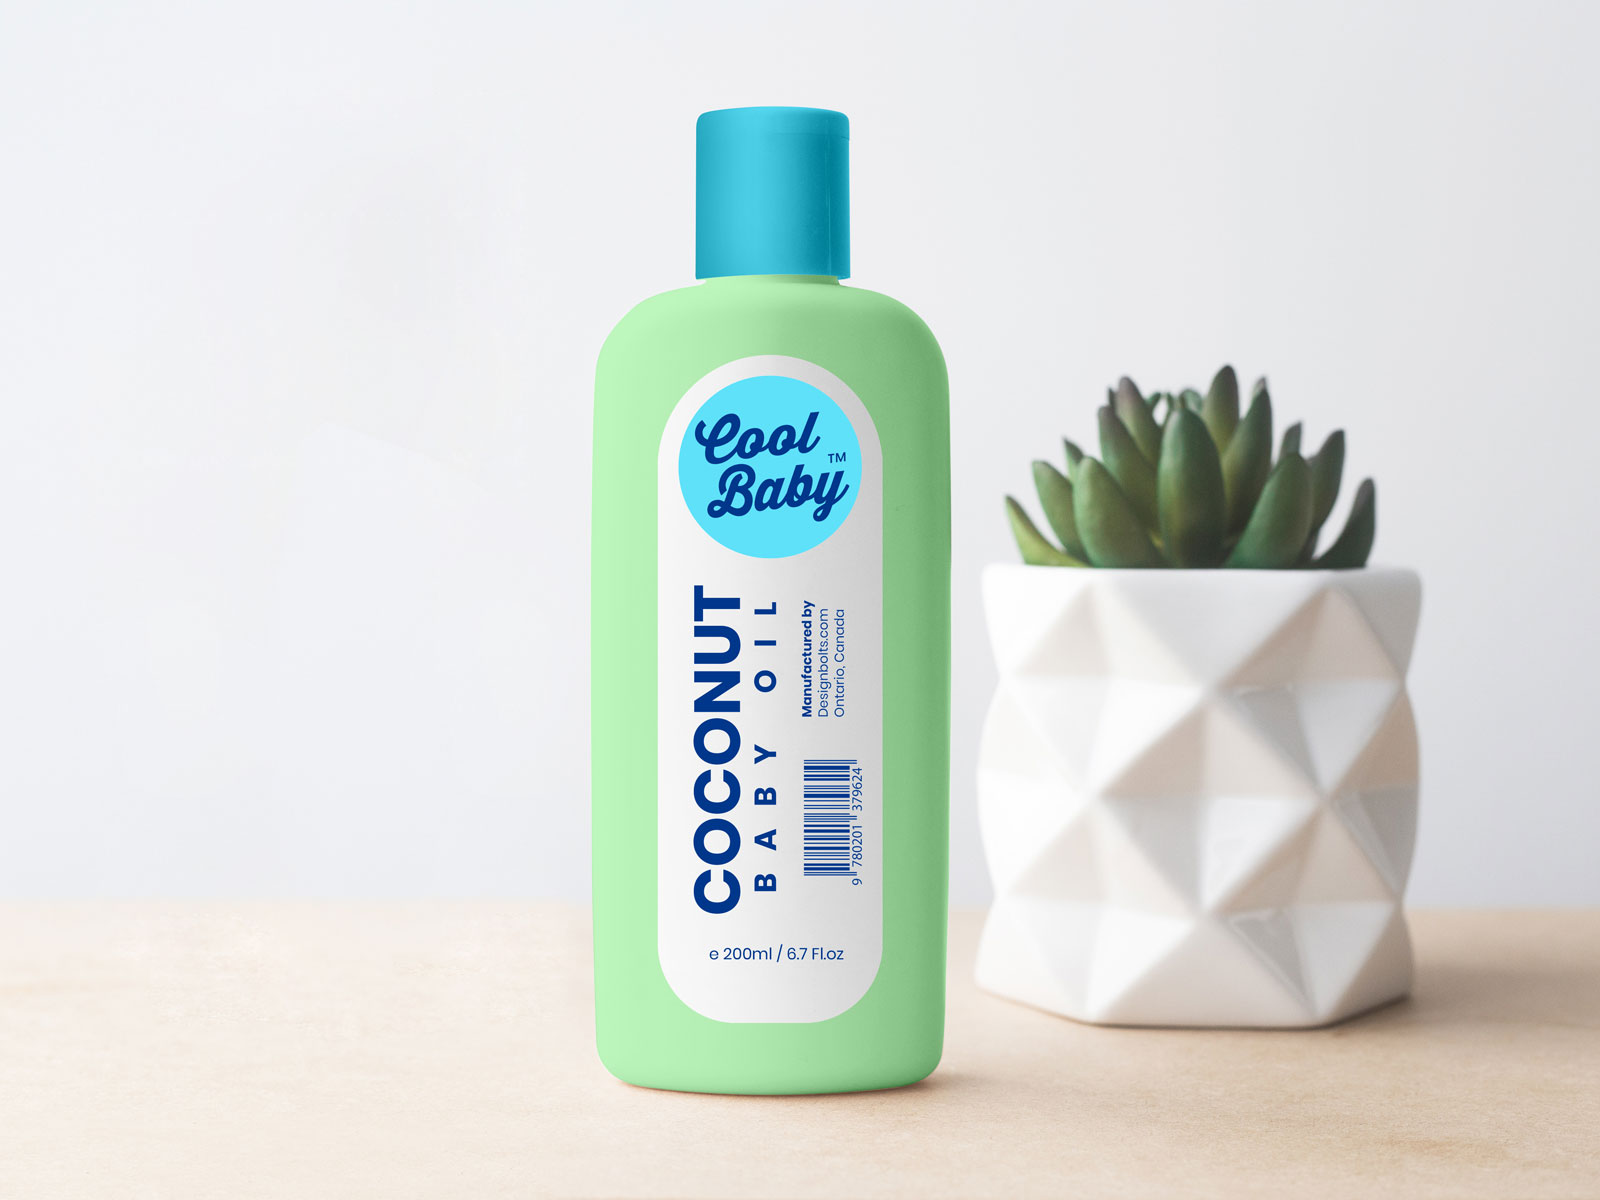 Free-Baby-Cream-Plastic-Bottle-Mockup-PSD